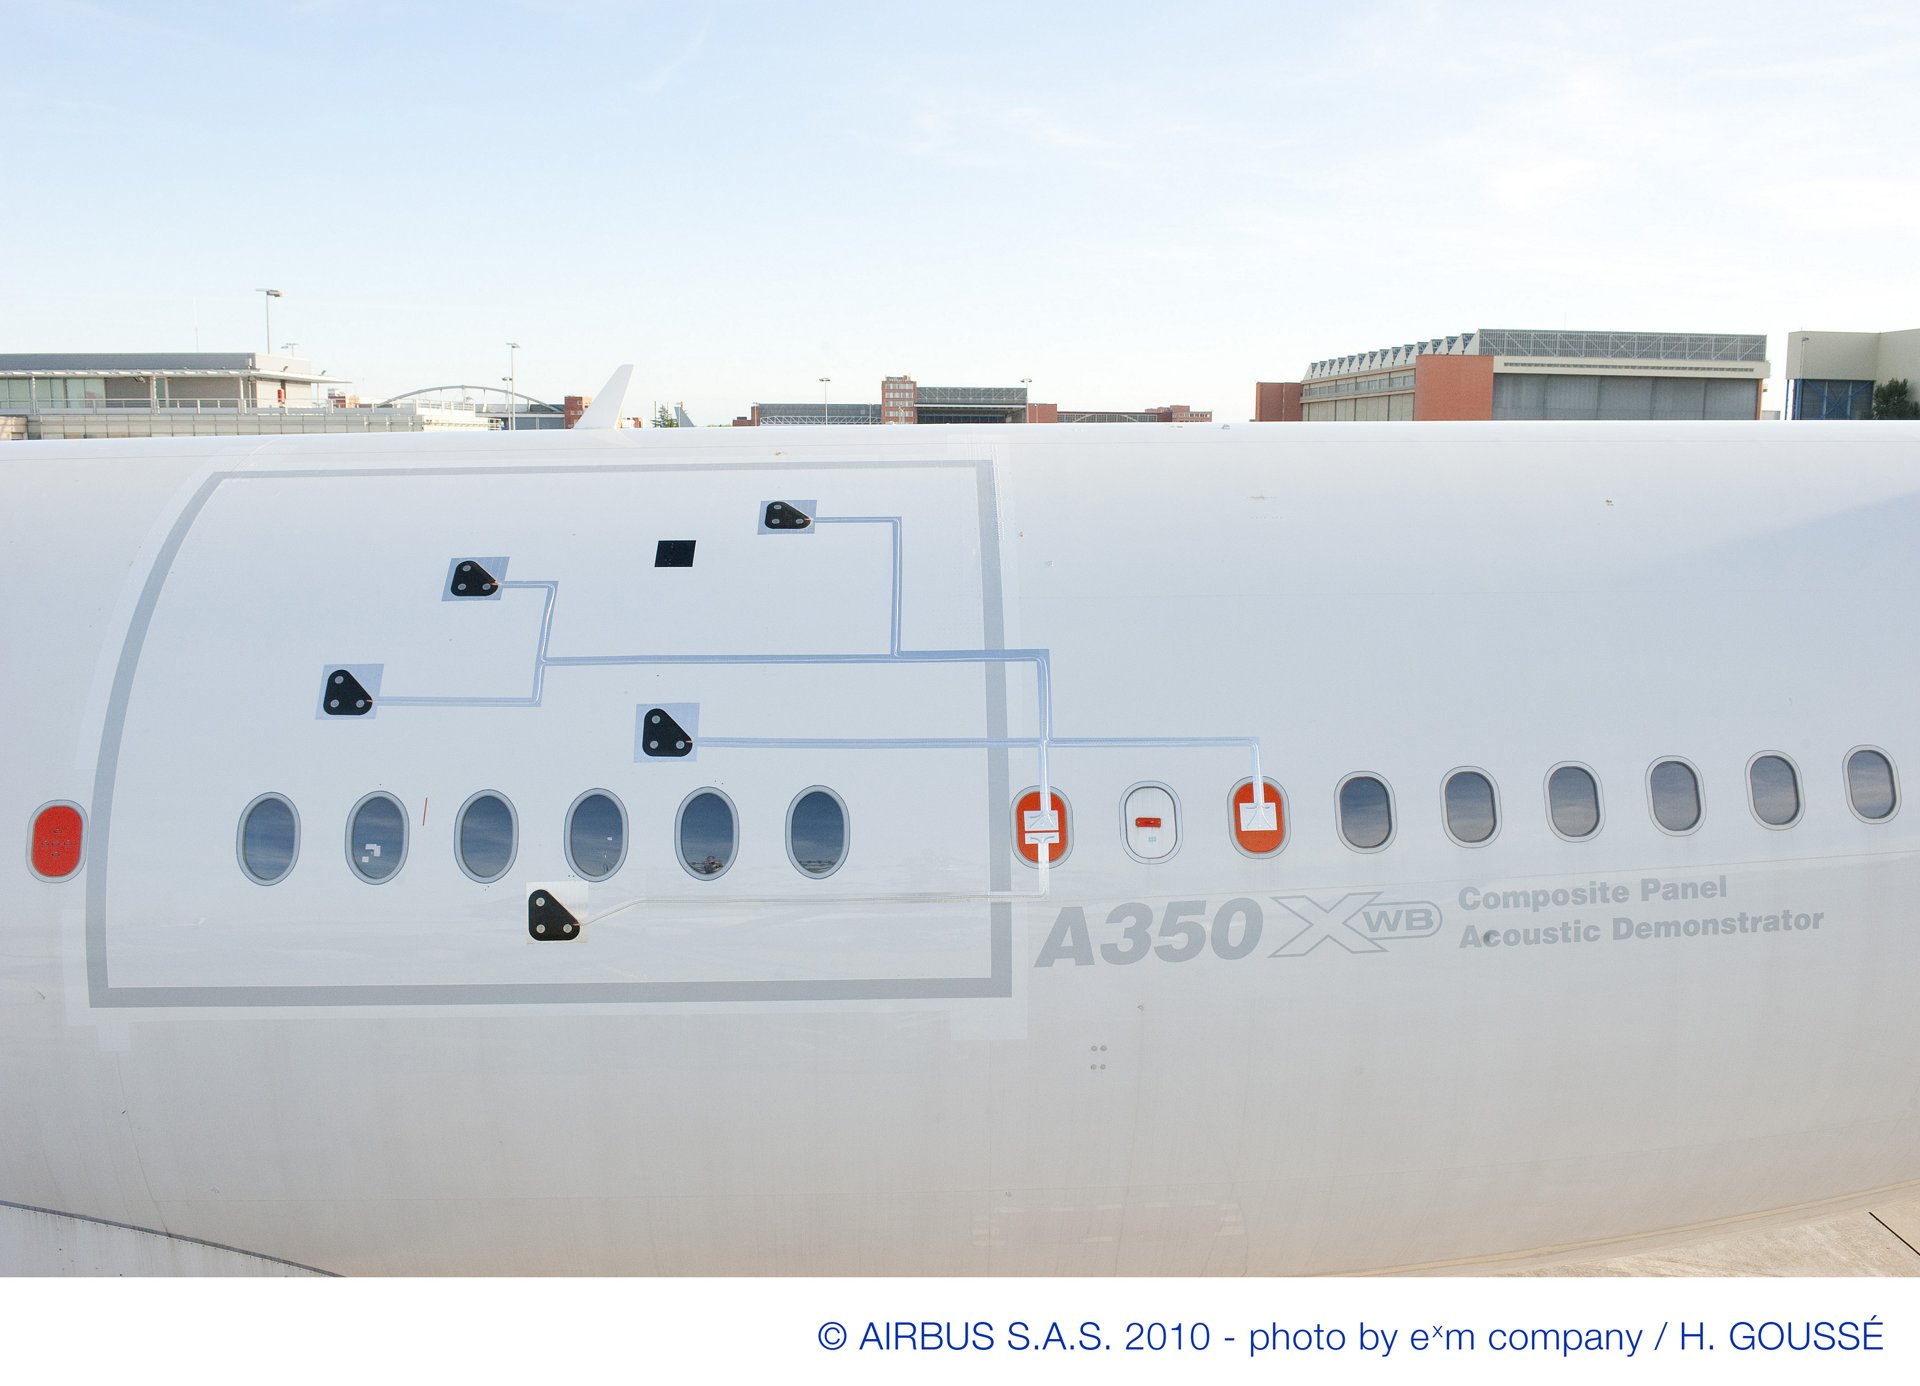 A350 Acoustic Demonstrator CFRP panel